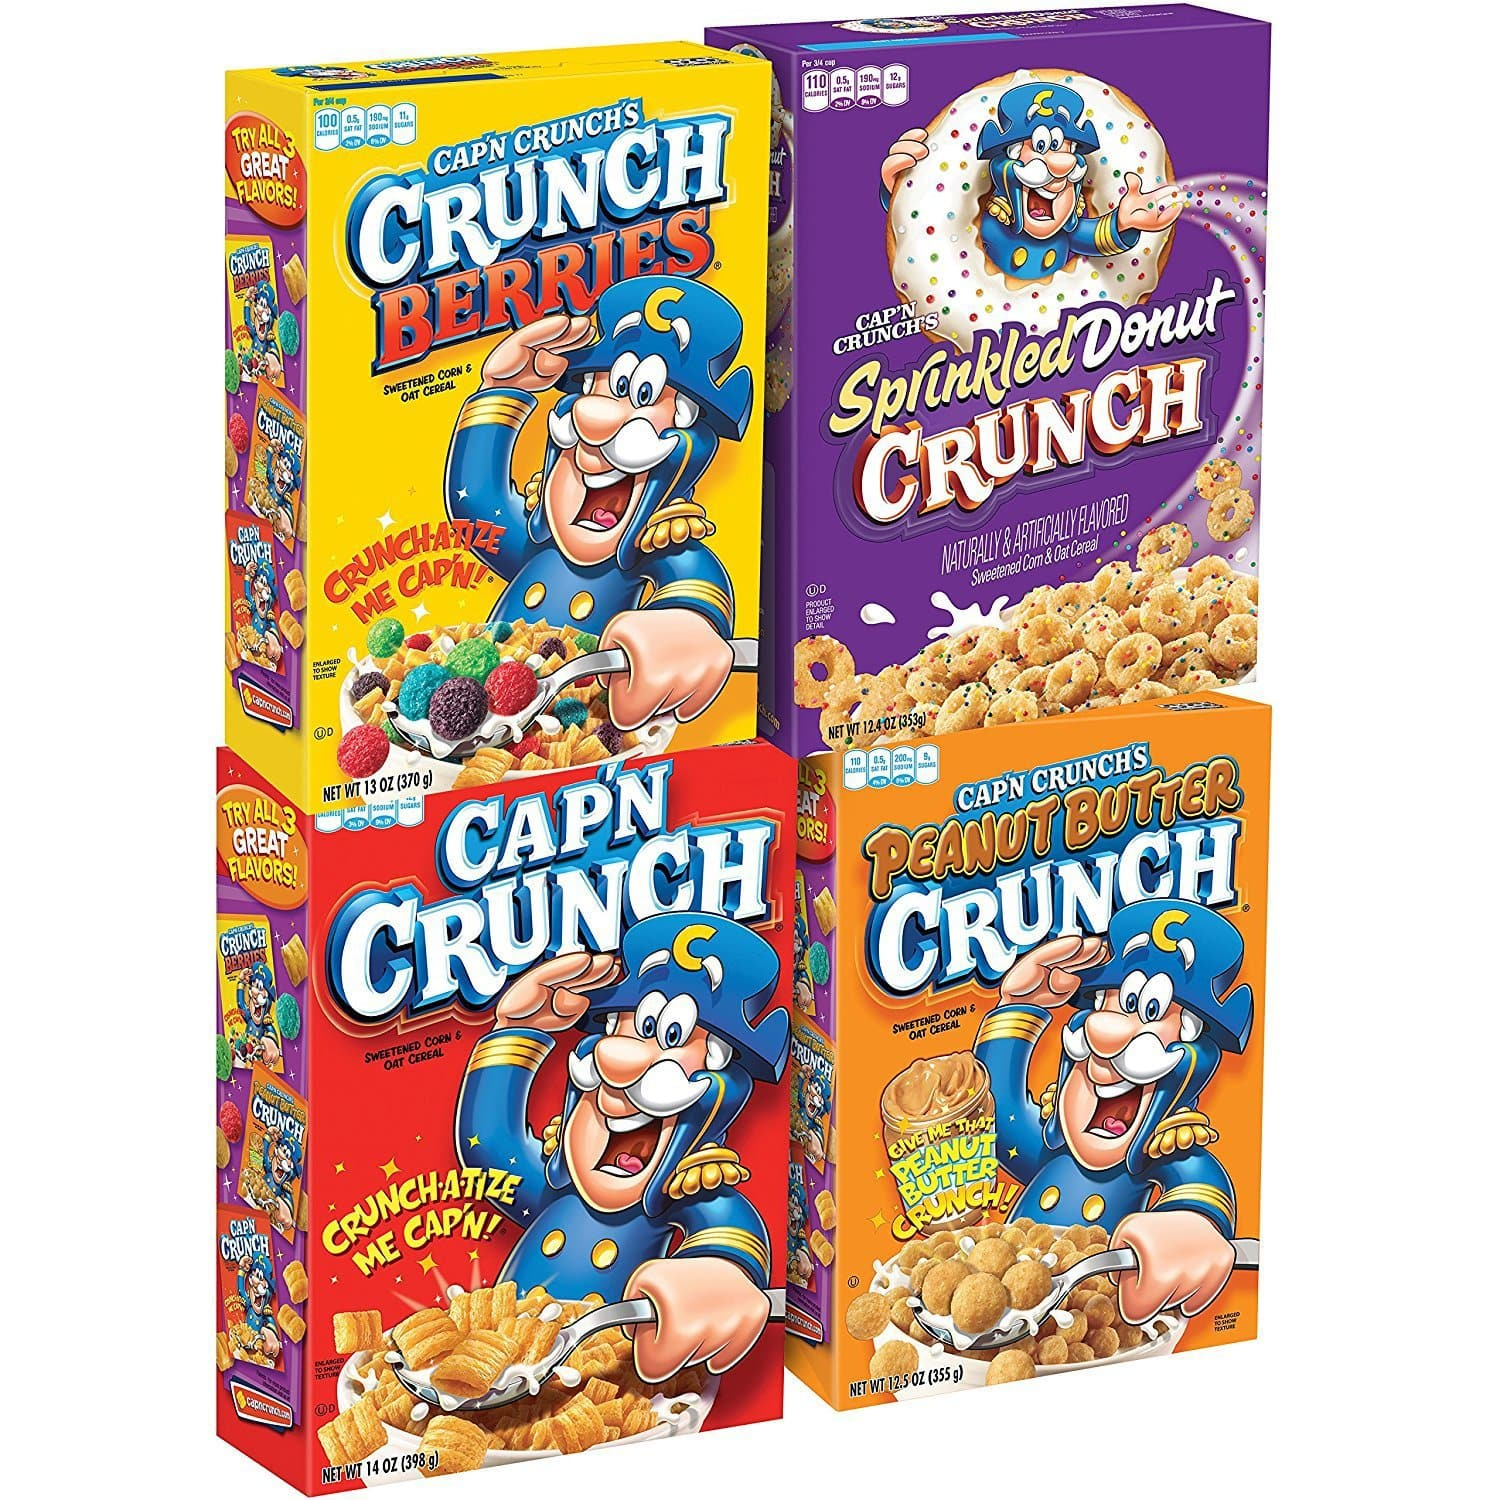 Cap'N Crunch Breakfast Cereal, Variety Pack, 14 oz (4 count) - $6.72 or less AC + S&S